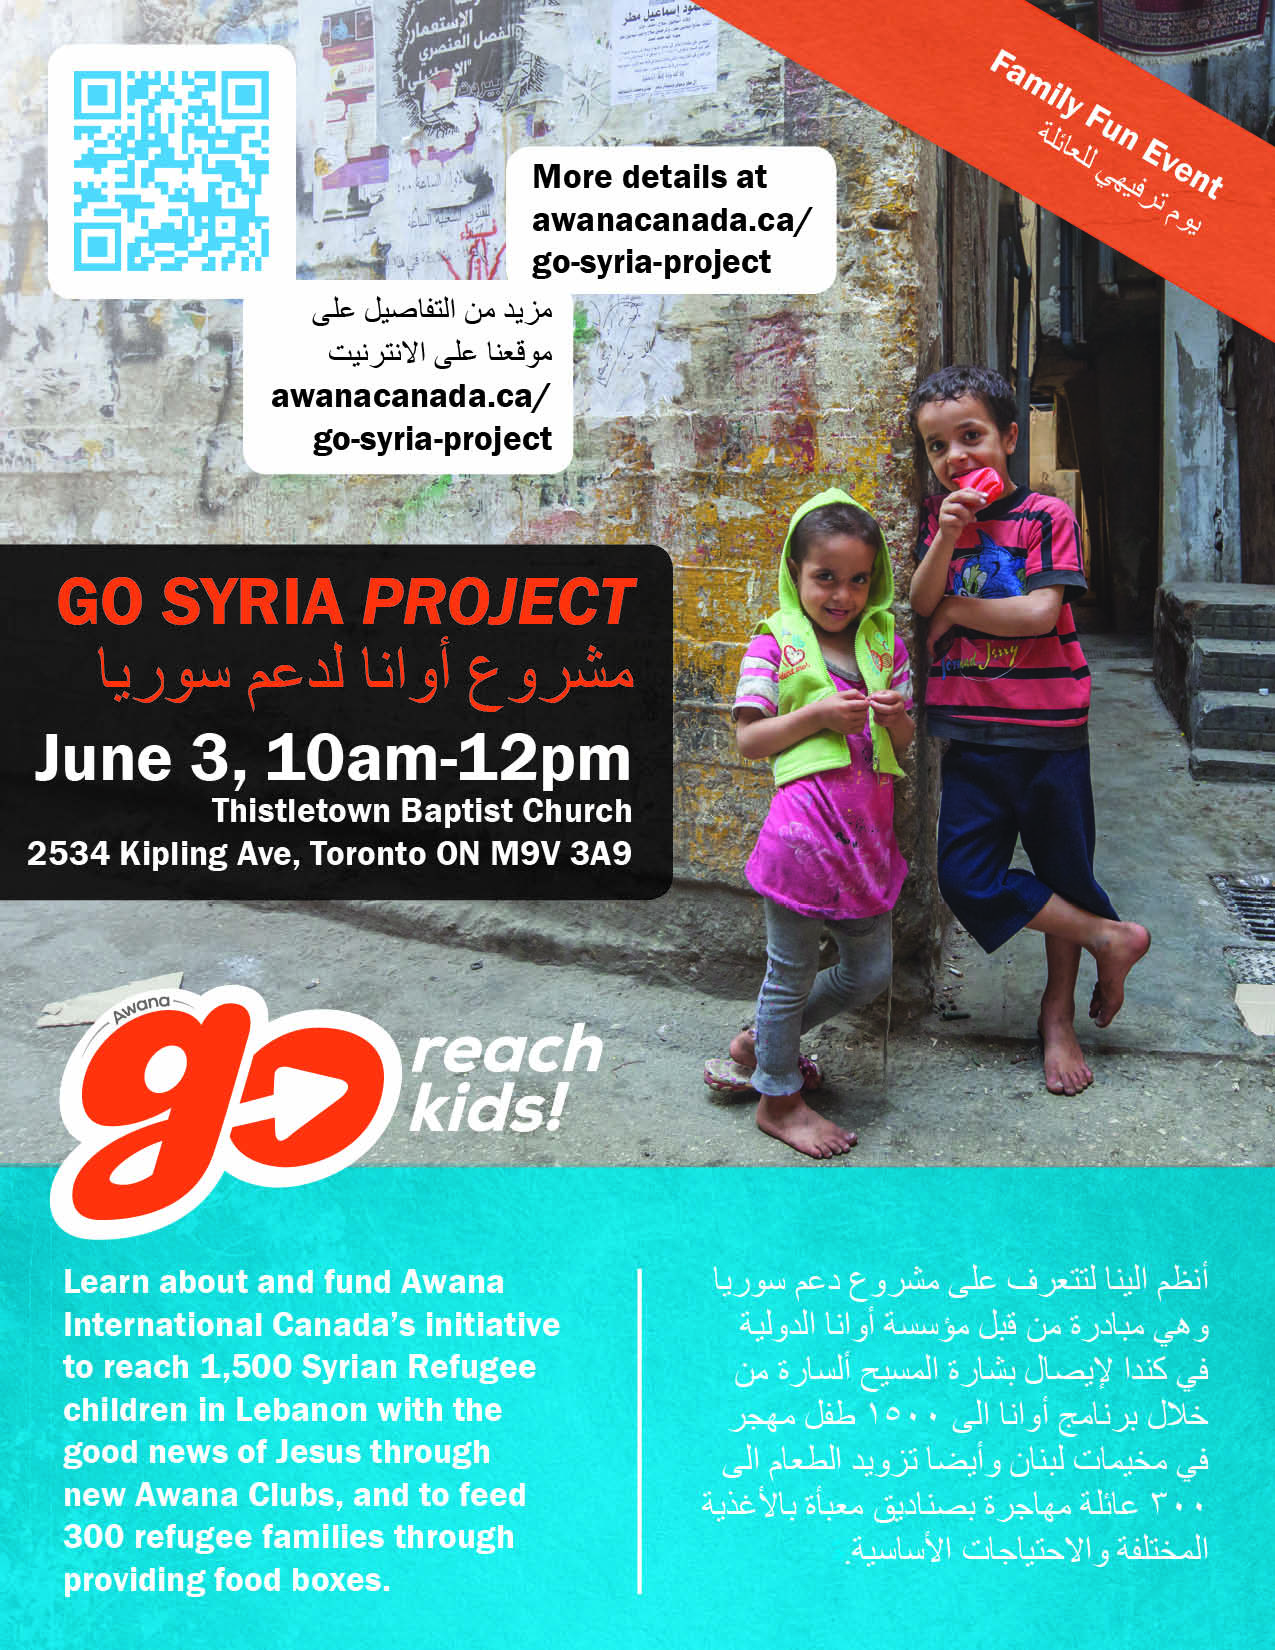 8.5x11 Poster for Go Syria Project in Toronto